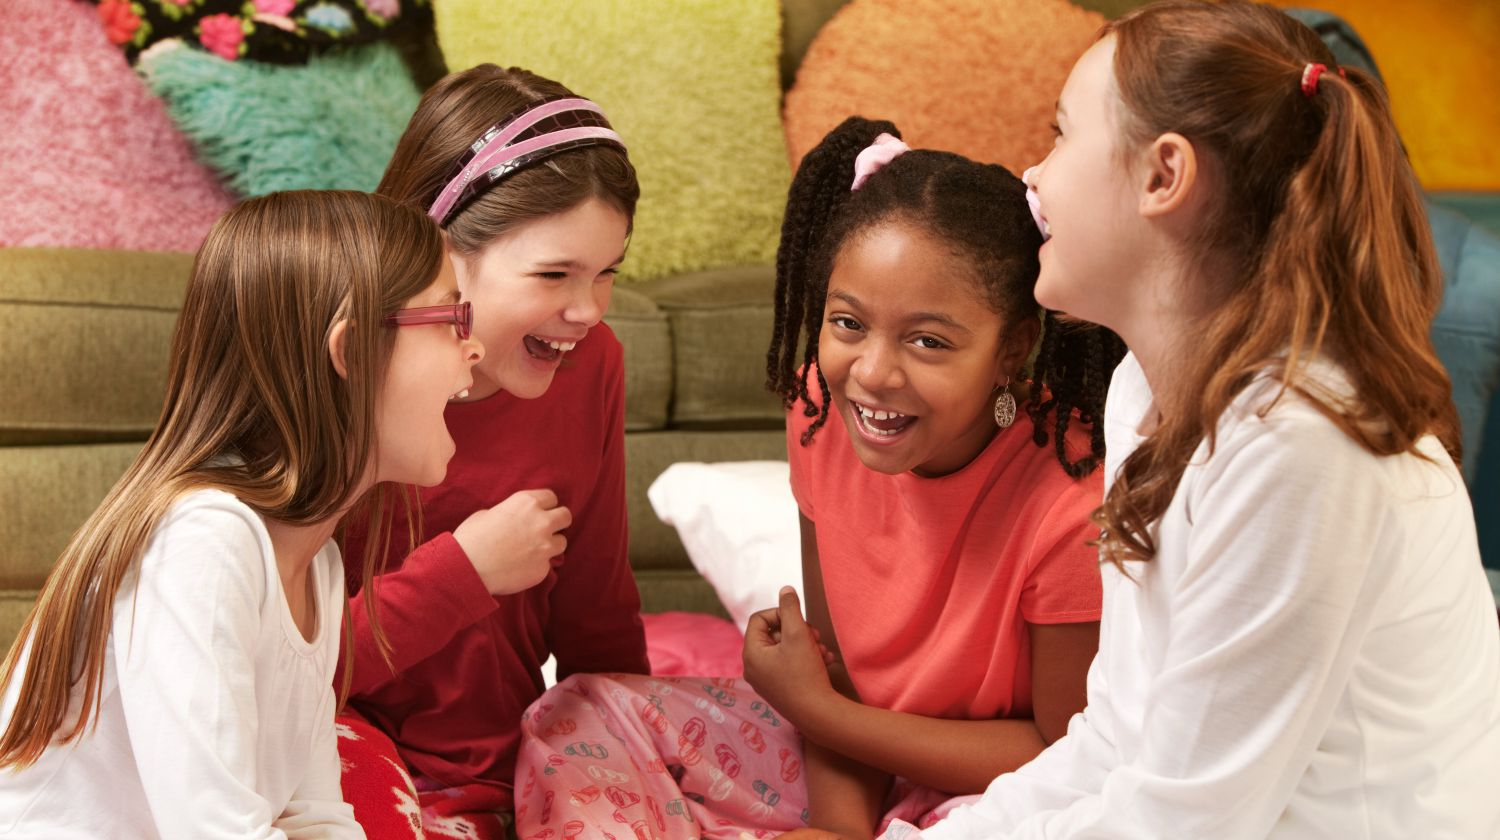 Feature | Happy girls in pajamas at a sleepover | Activities For A Sleepover | Fun Slumber Party Ideas